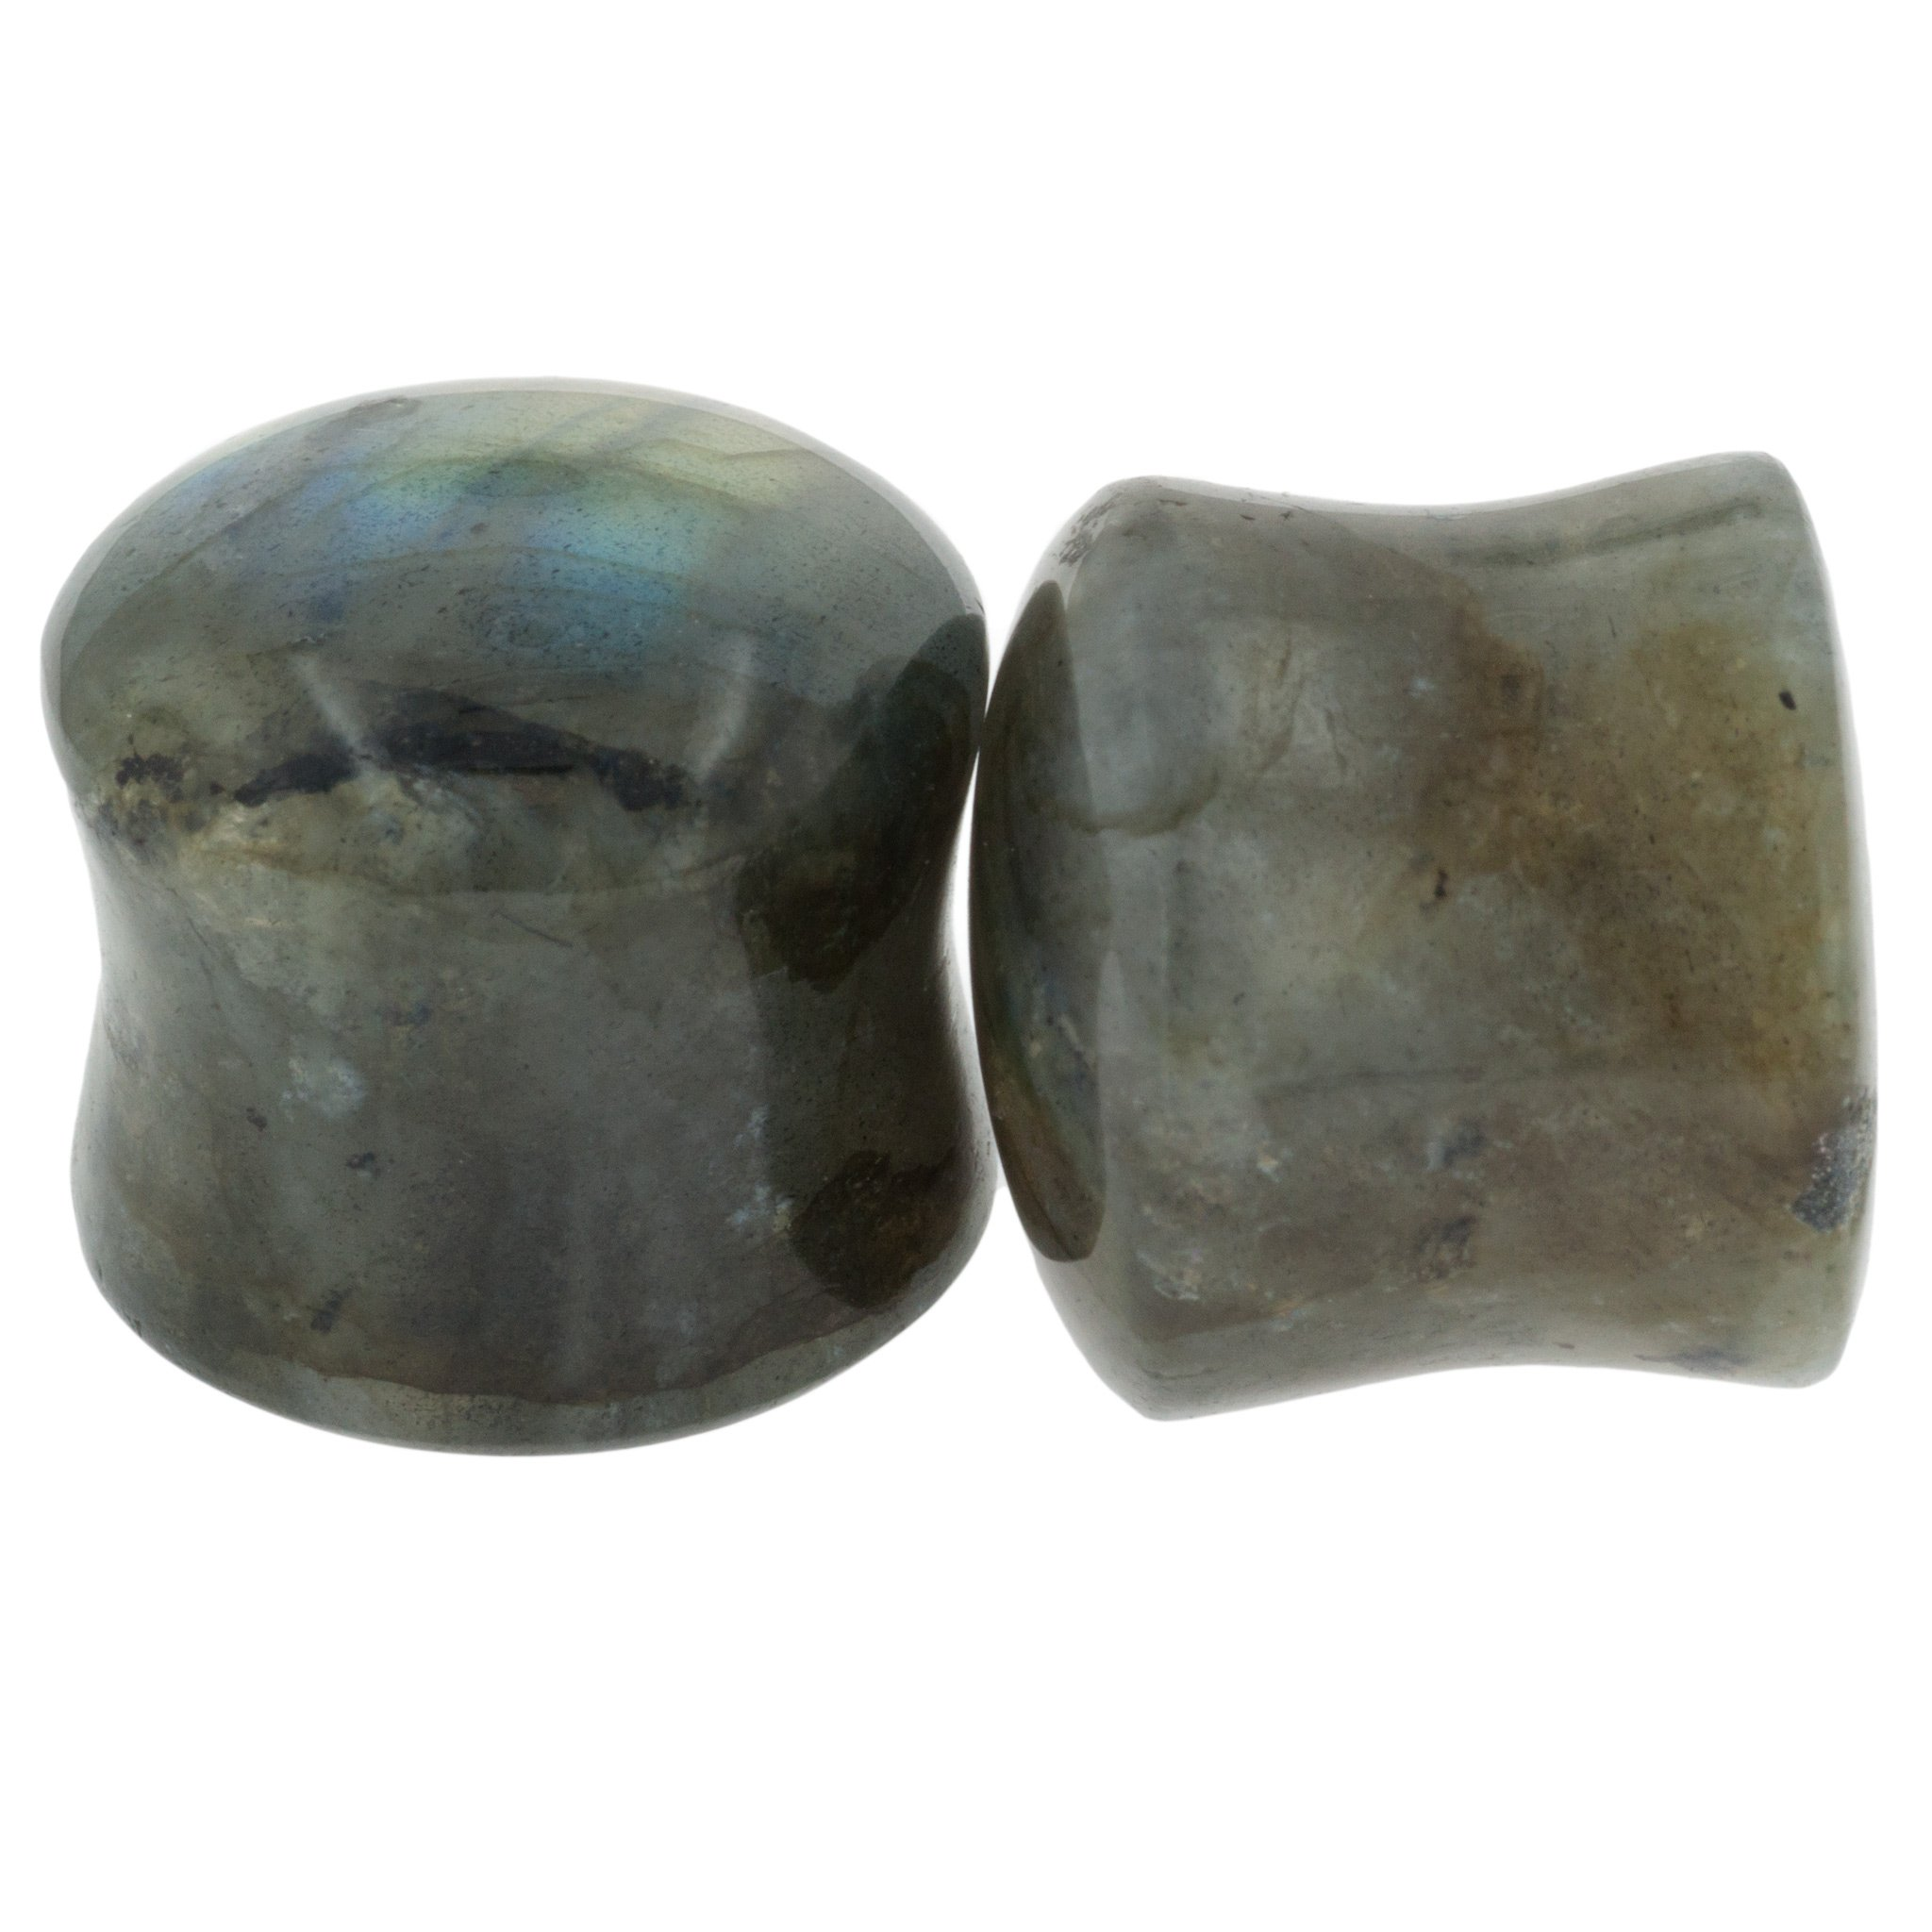 Pair of Labradorite Stone Double Flared Domed/Flat Plugs: 1''